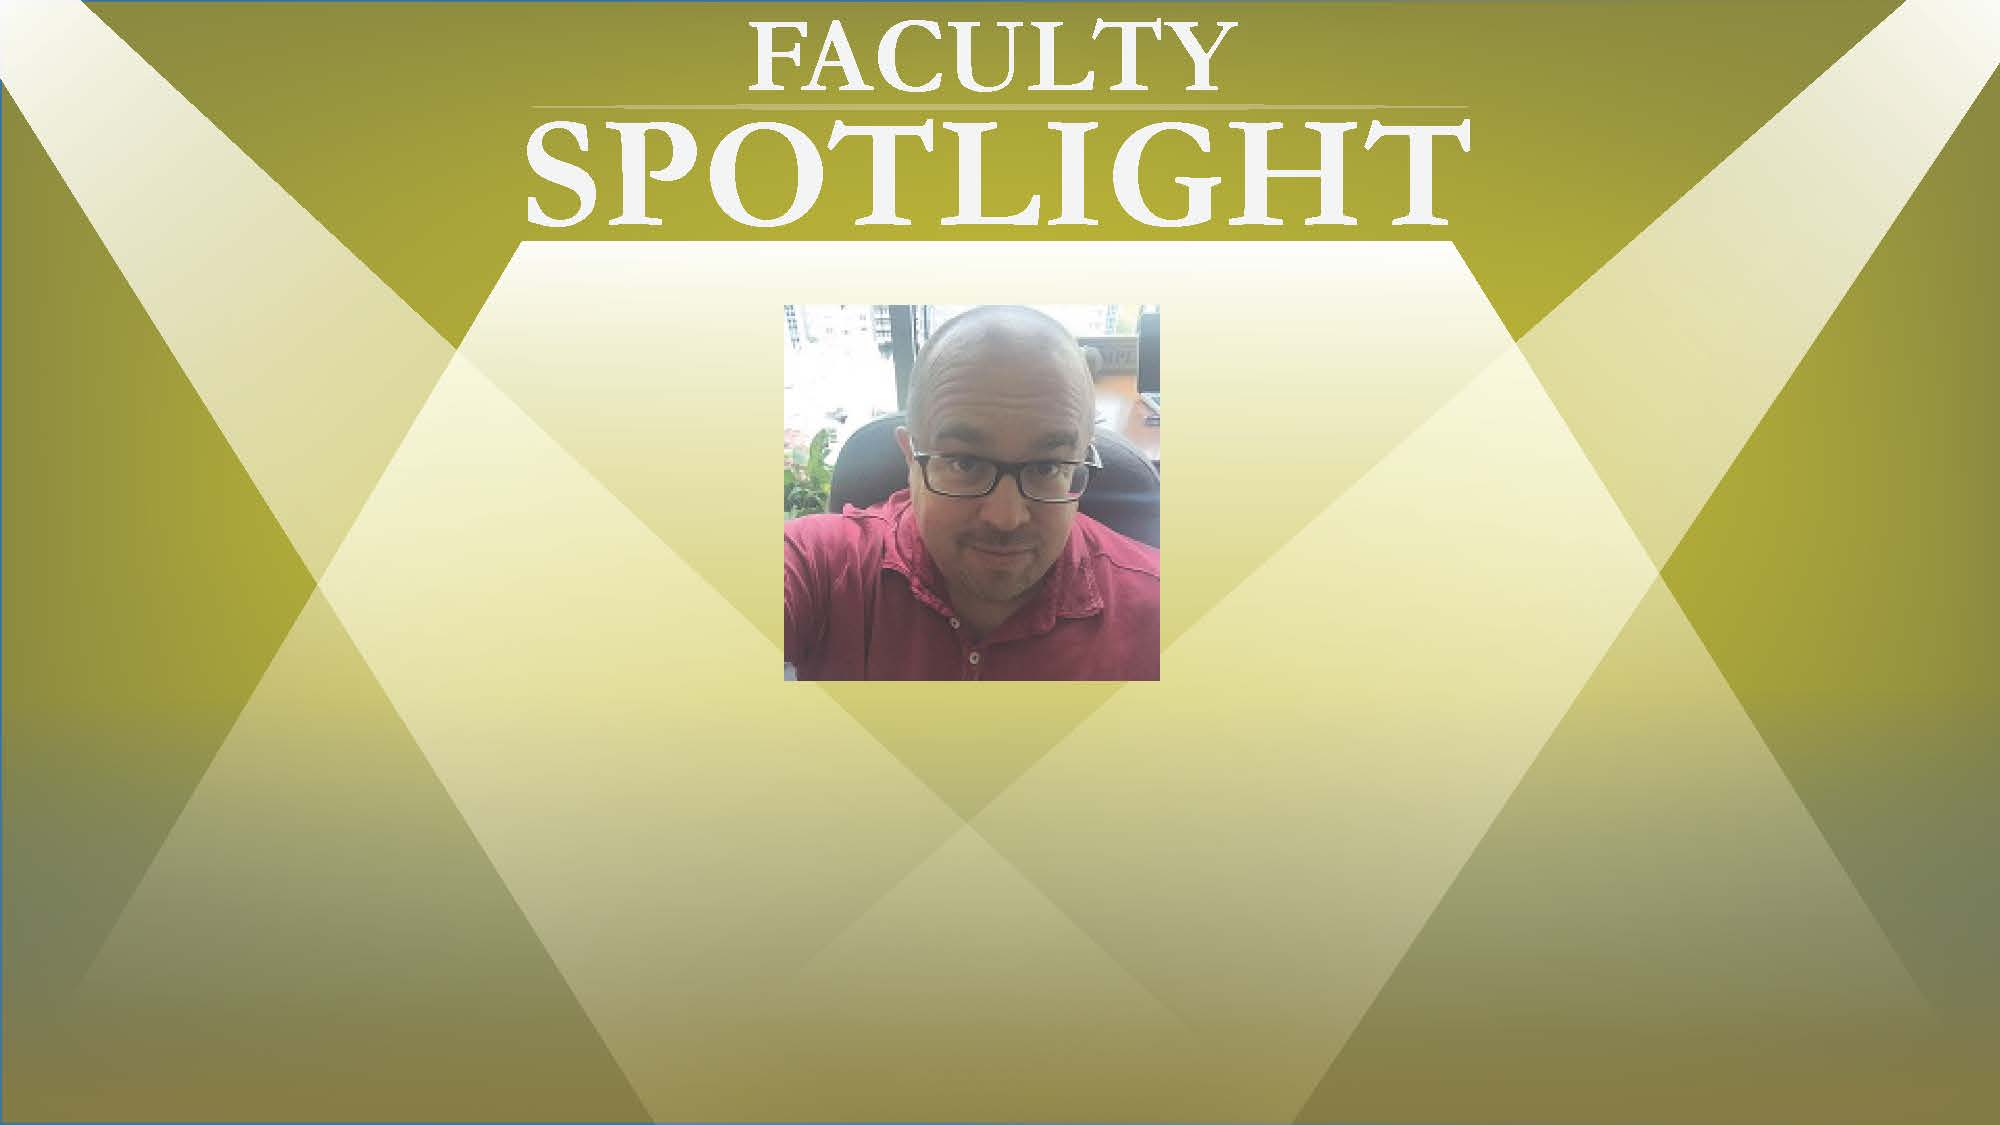 Communication Faculty Spotlight